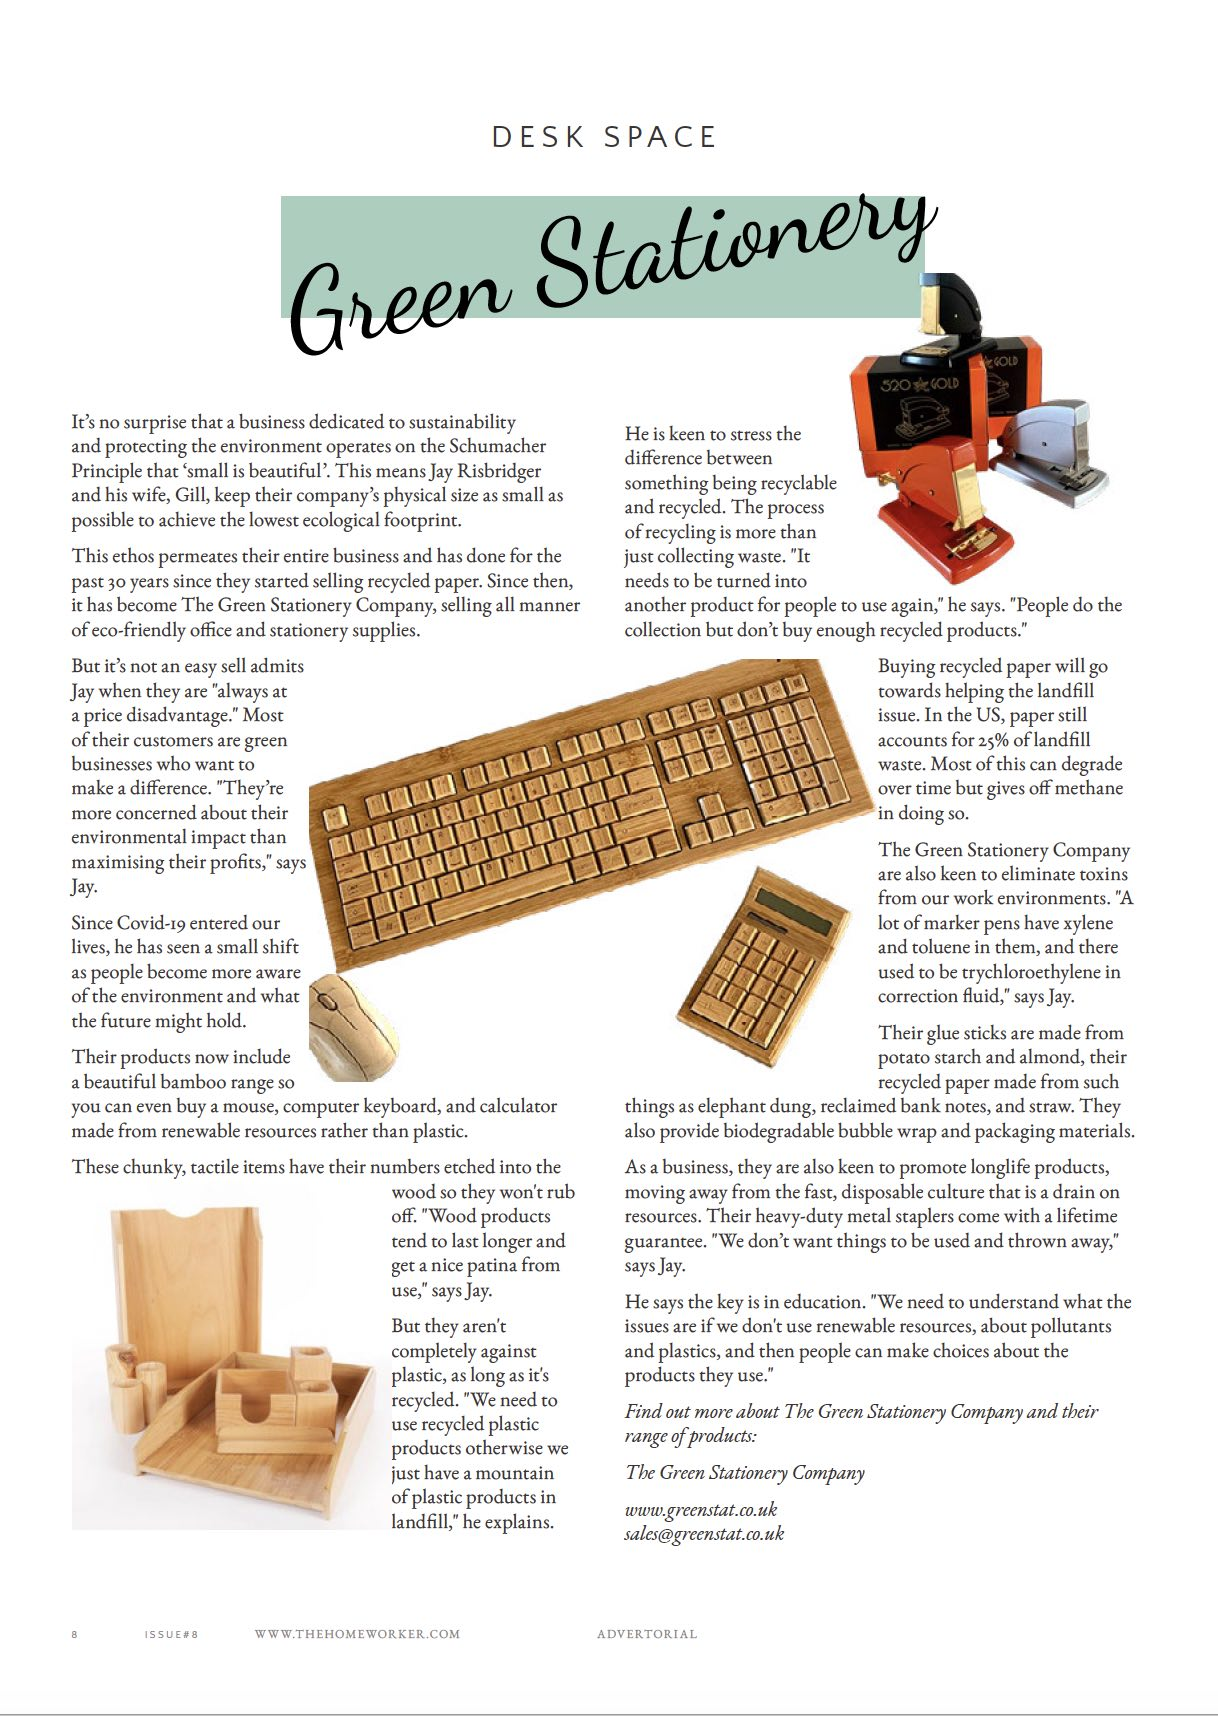 The Green Stationery Company in The Homeworker Magazine